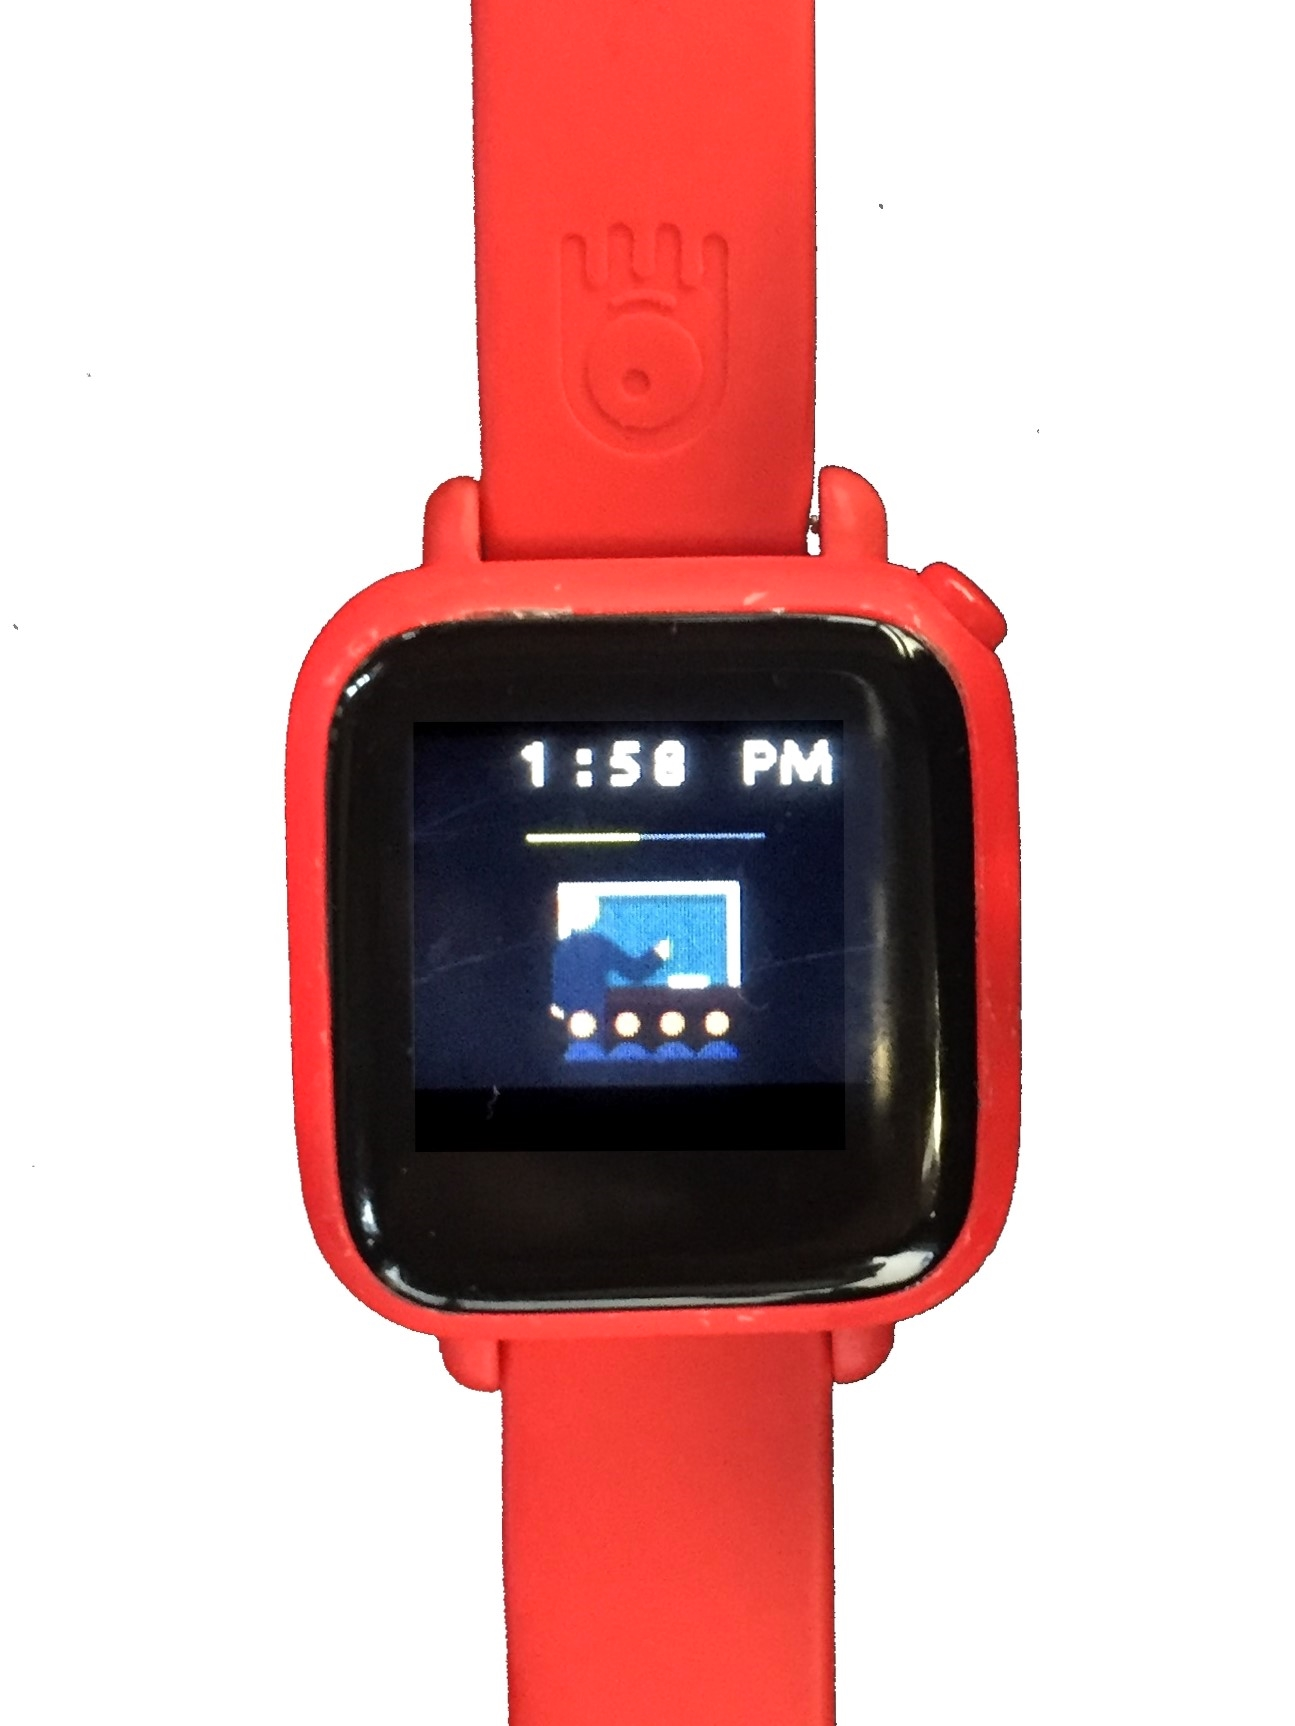 Octopus Watch with icons face. Icon watch for kids